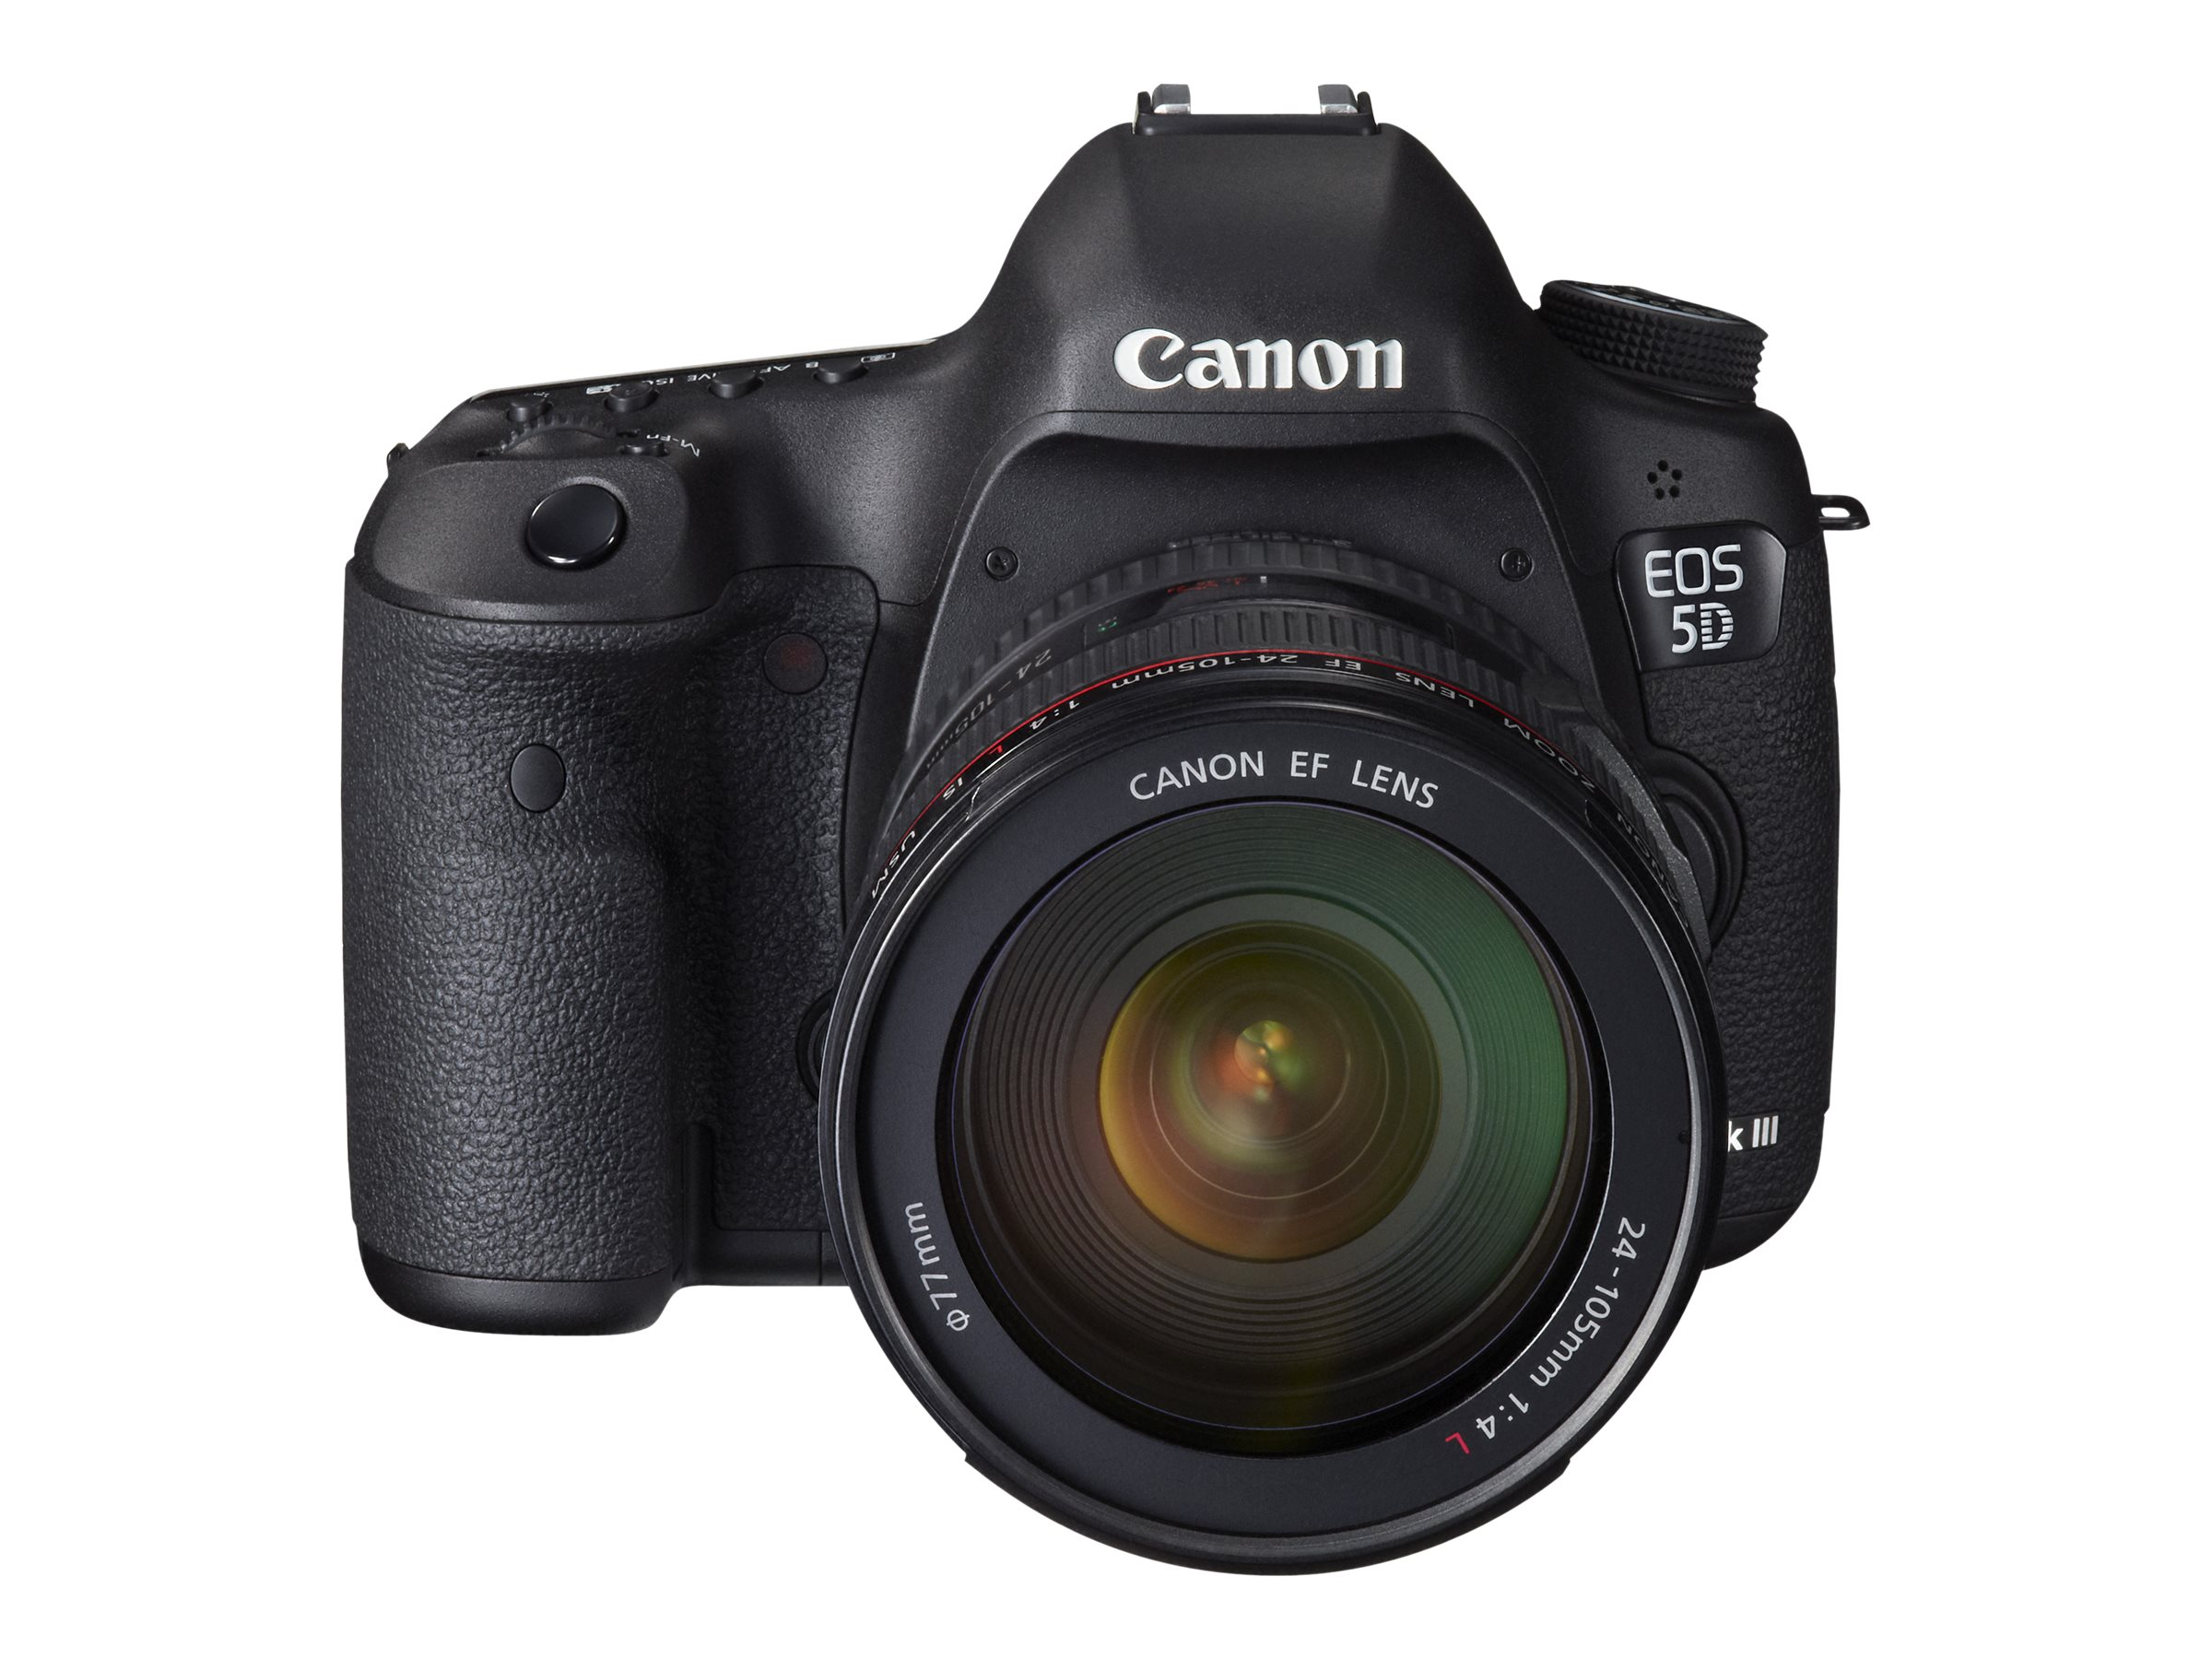 Canon EOS 5D Mark III Digital Camera Kit 24-105mm, 5260B009, 13769468, Cameras - Digital - SLR